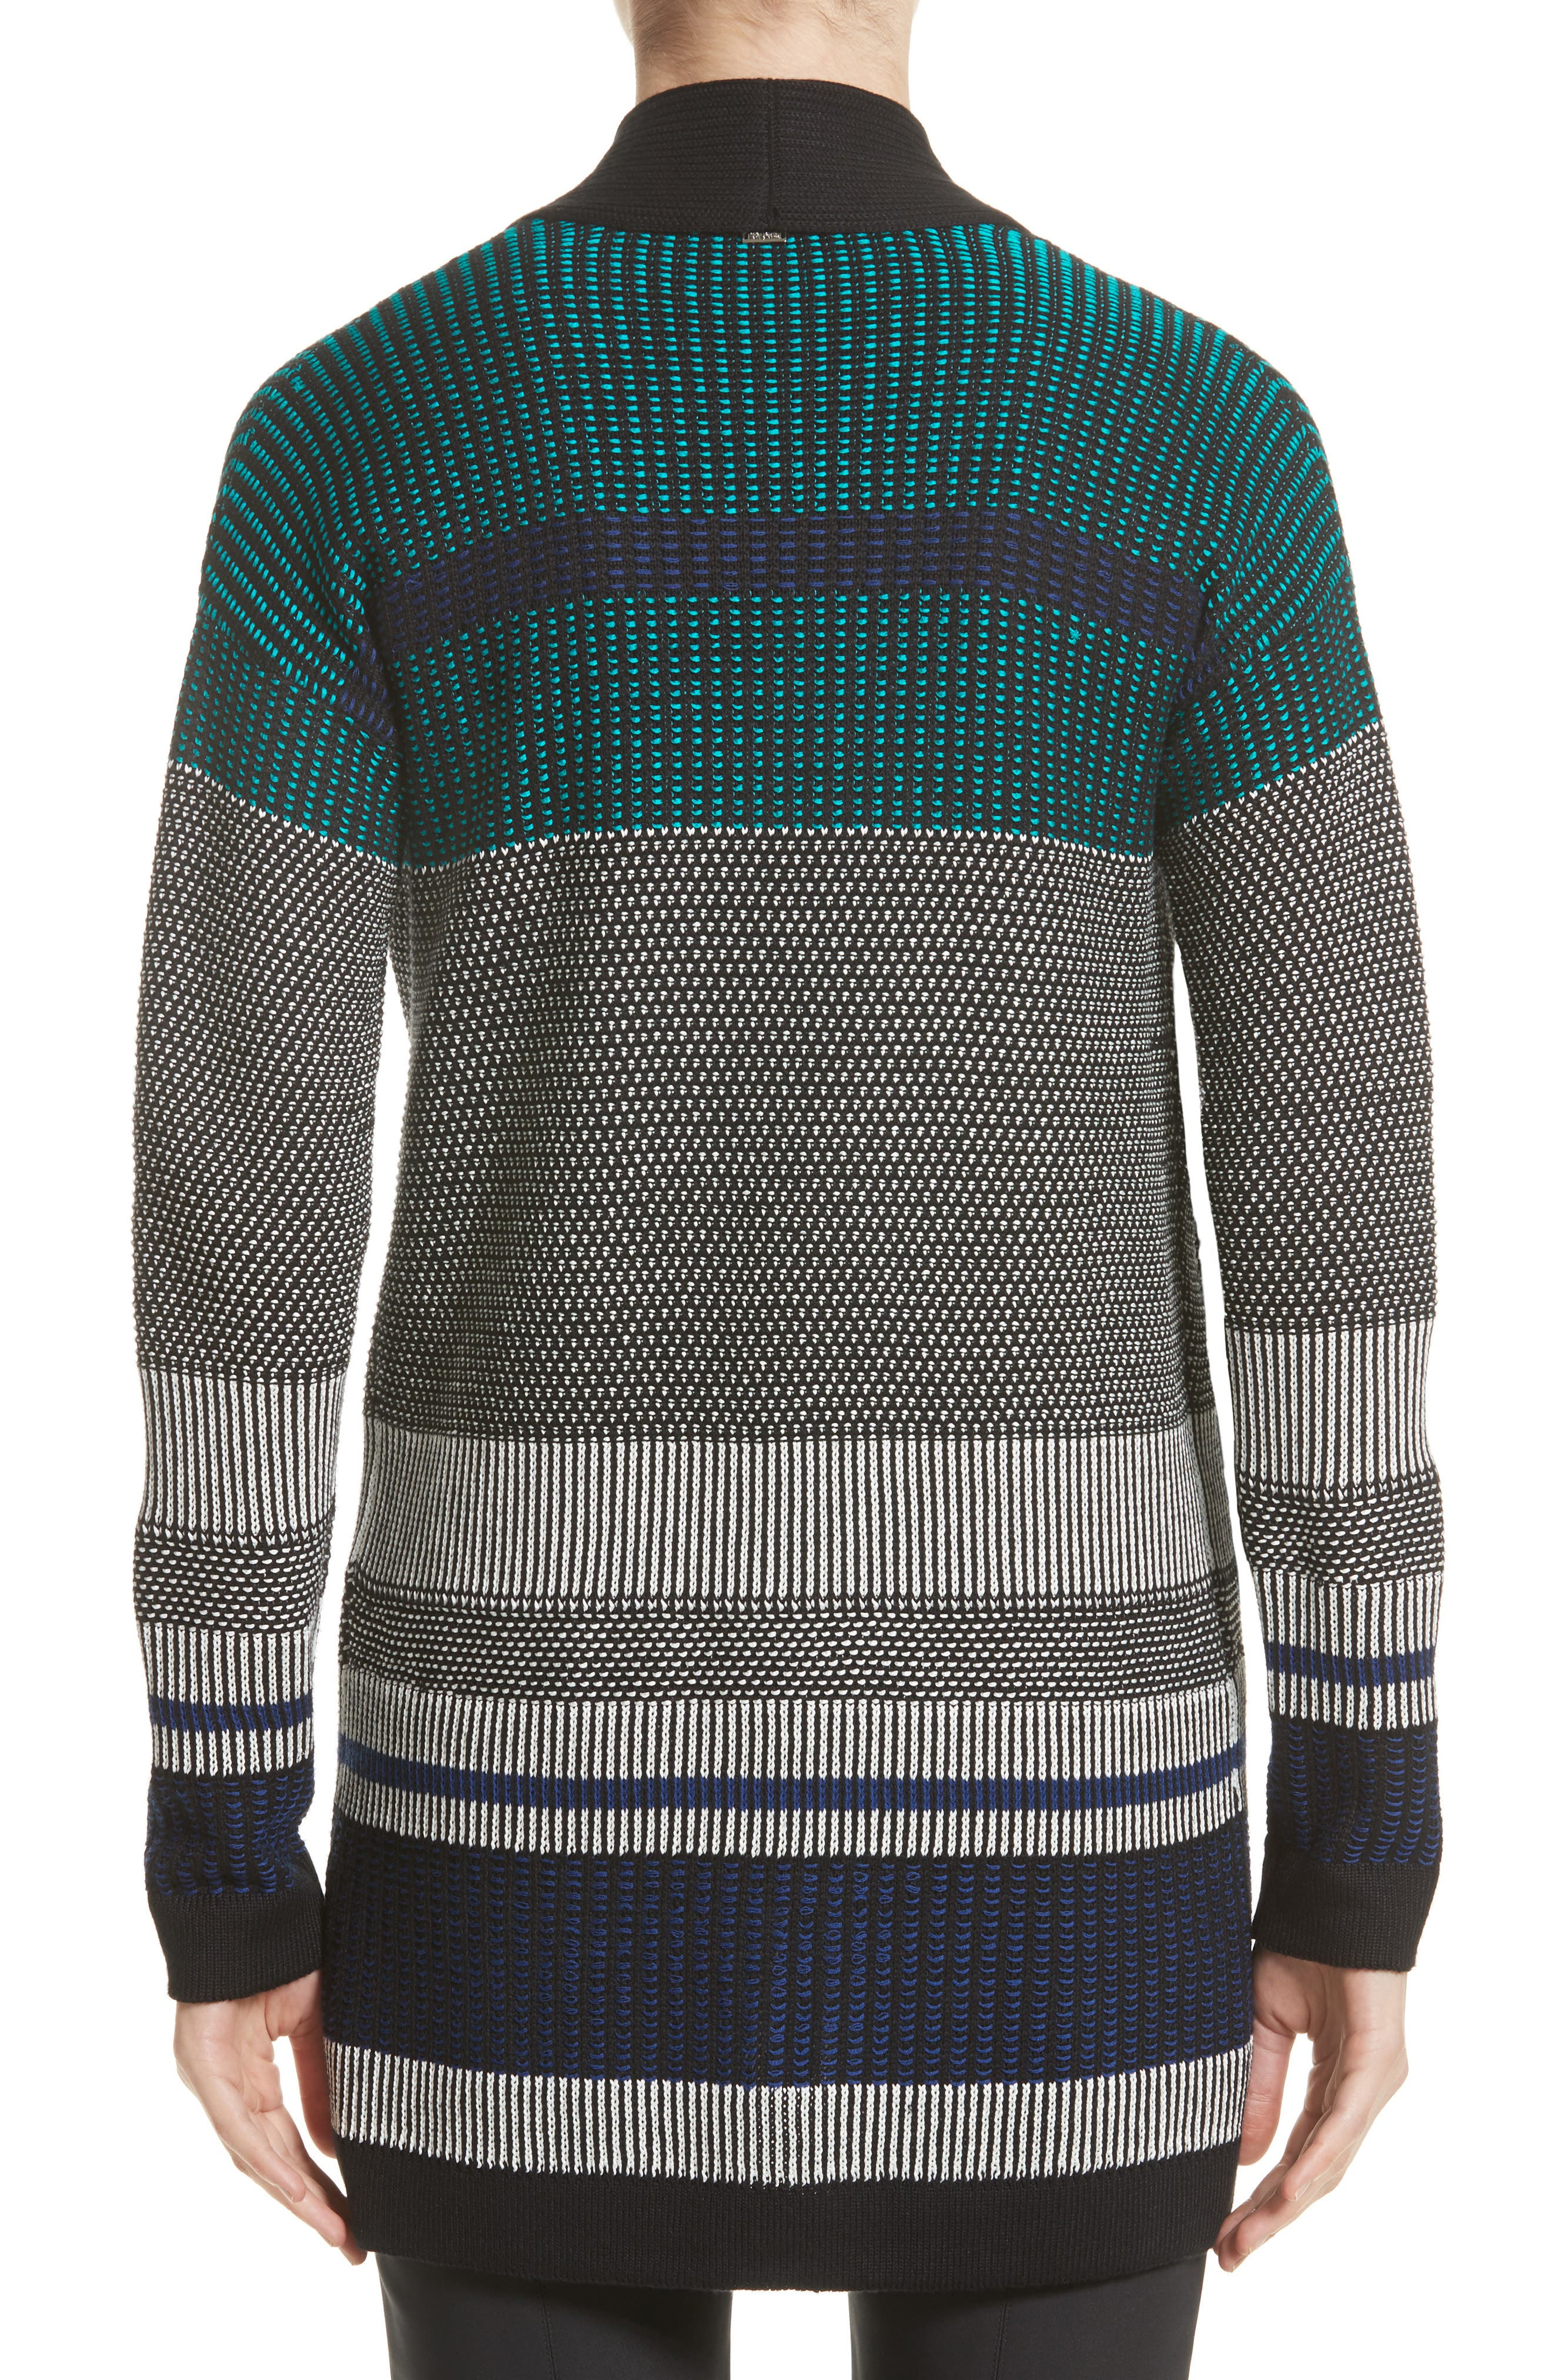 Engineered Inlay Stitch Knit Cardigan,                             Alternate thumbnail 2, color,                             020